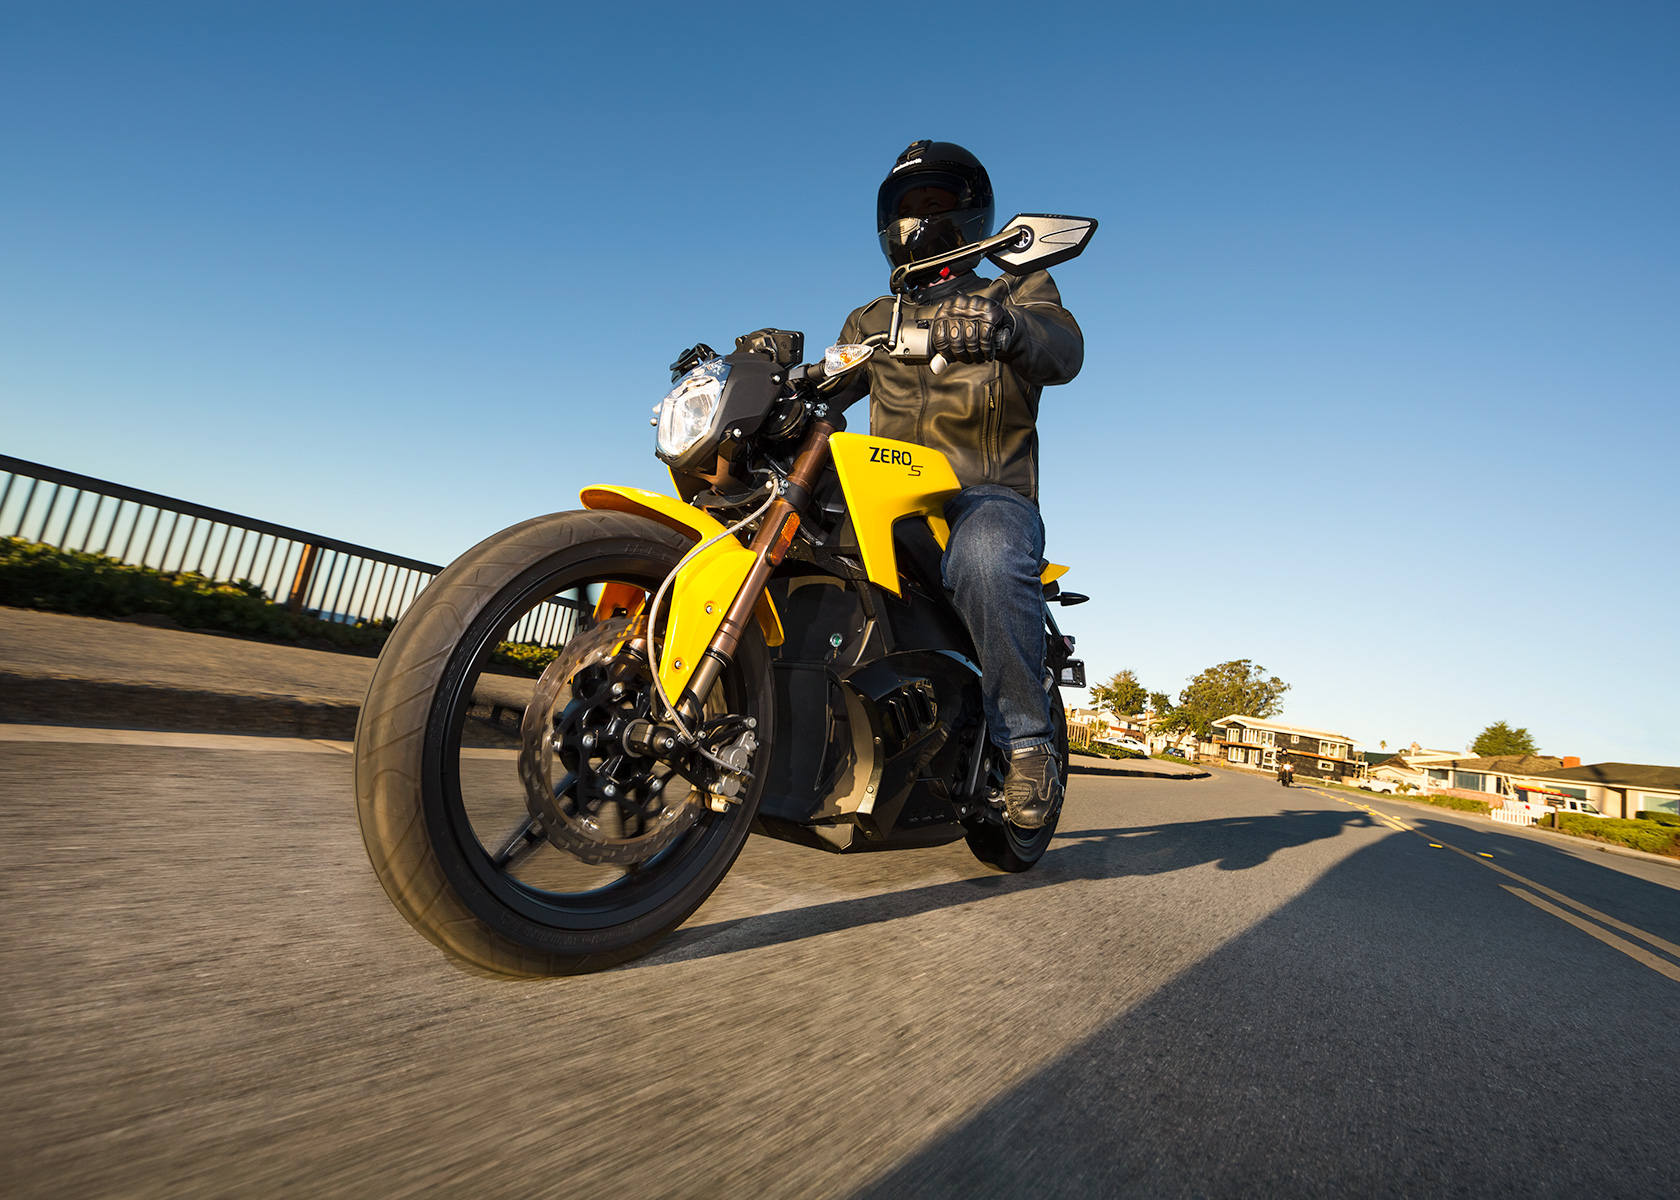 2013 Zero S Electric Motorcycle: